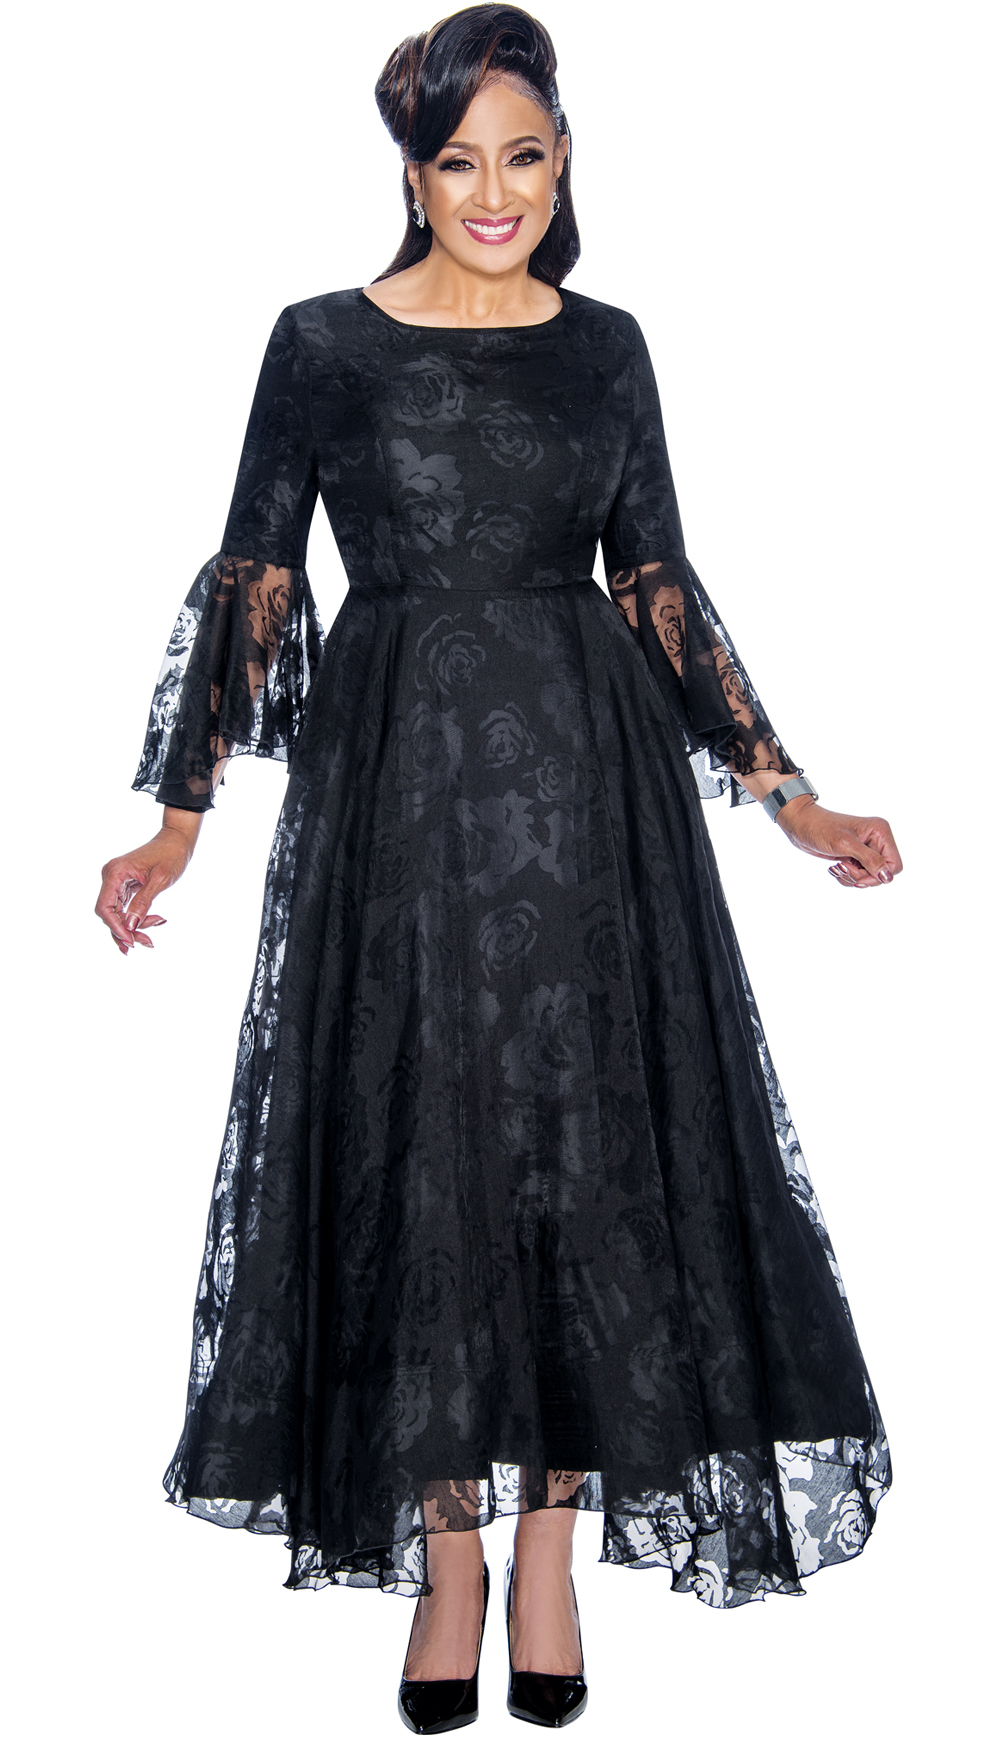 Dorinda Clark-Cole Dress 1901-BLK